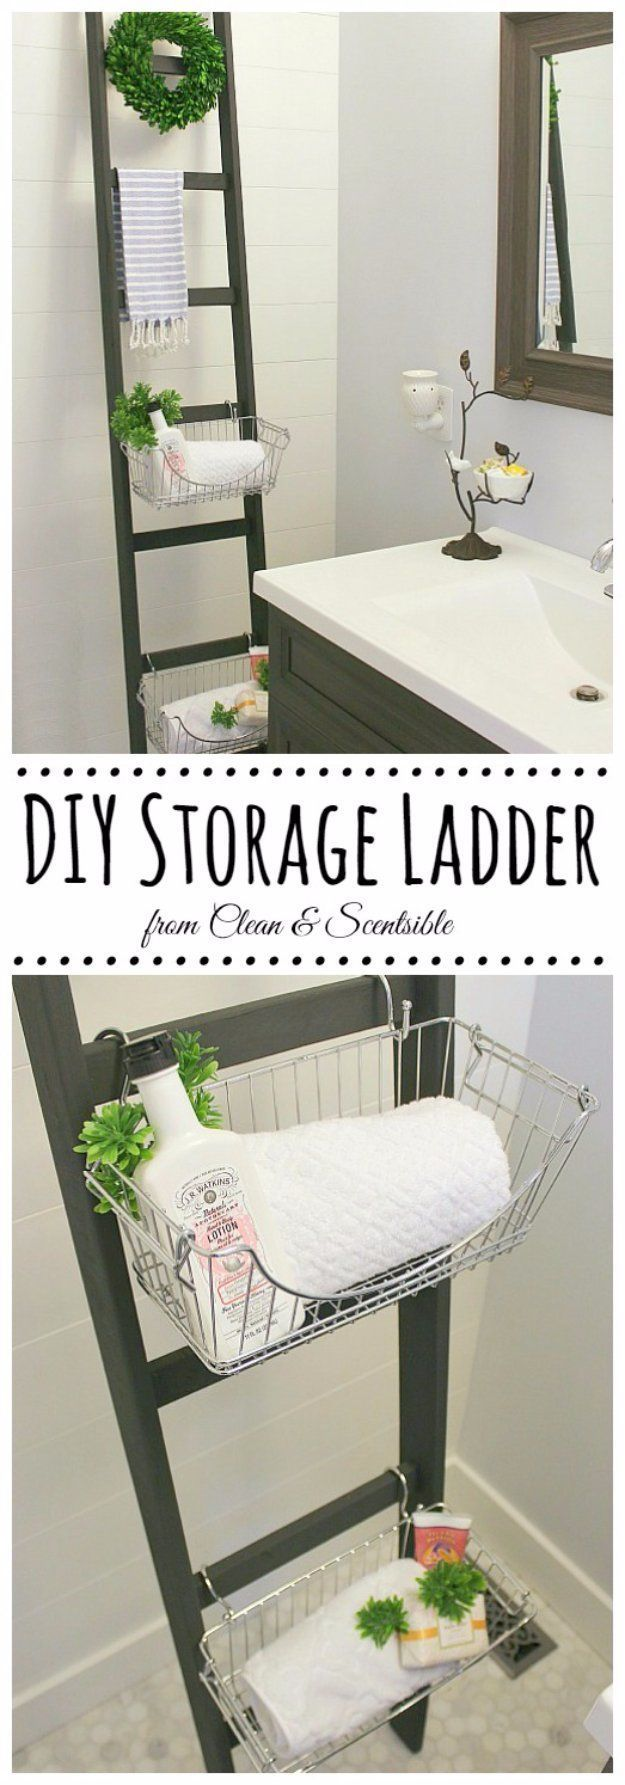 DIY Badezimmer Dekor Ideen – DIY Bad Lagerung Leiter – Cool Do It Yourself